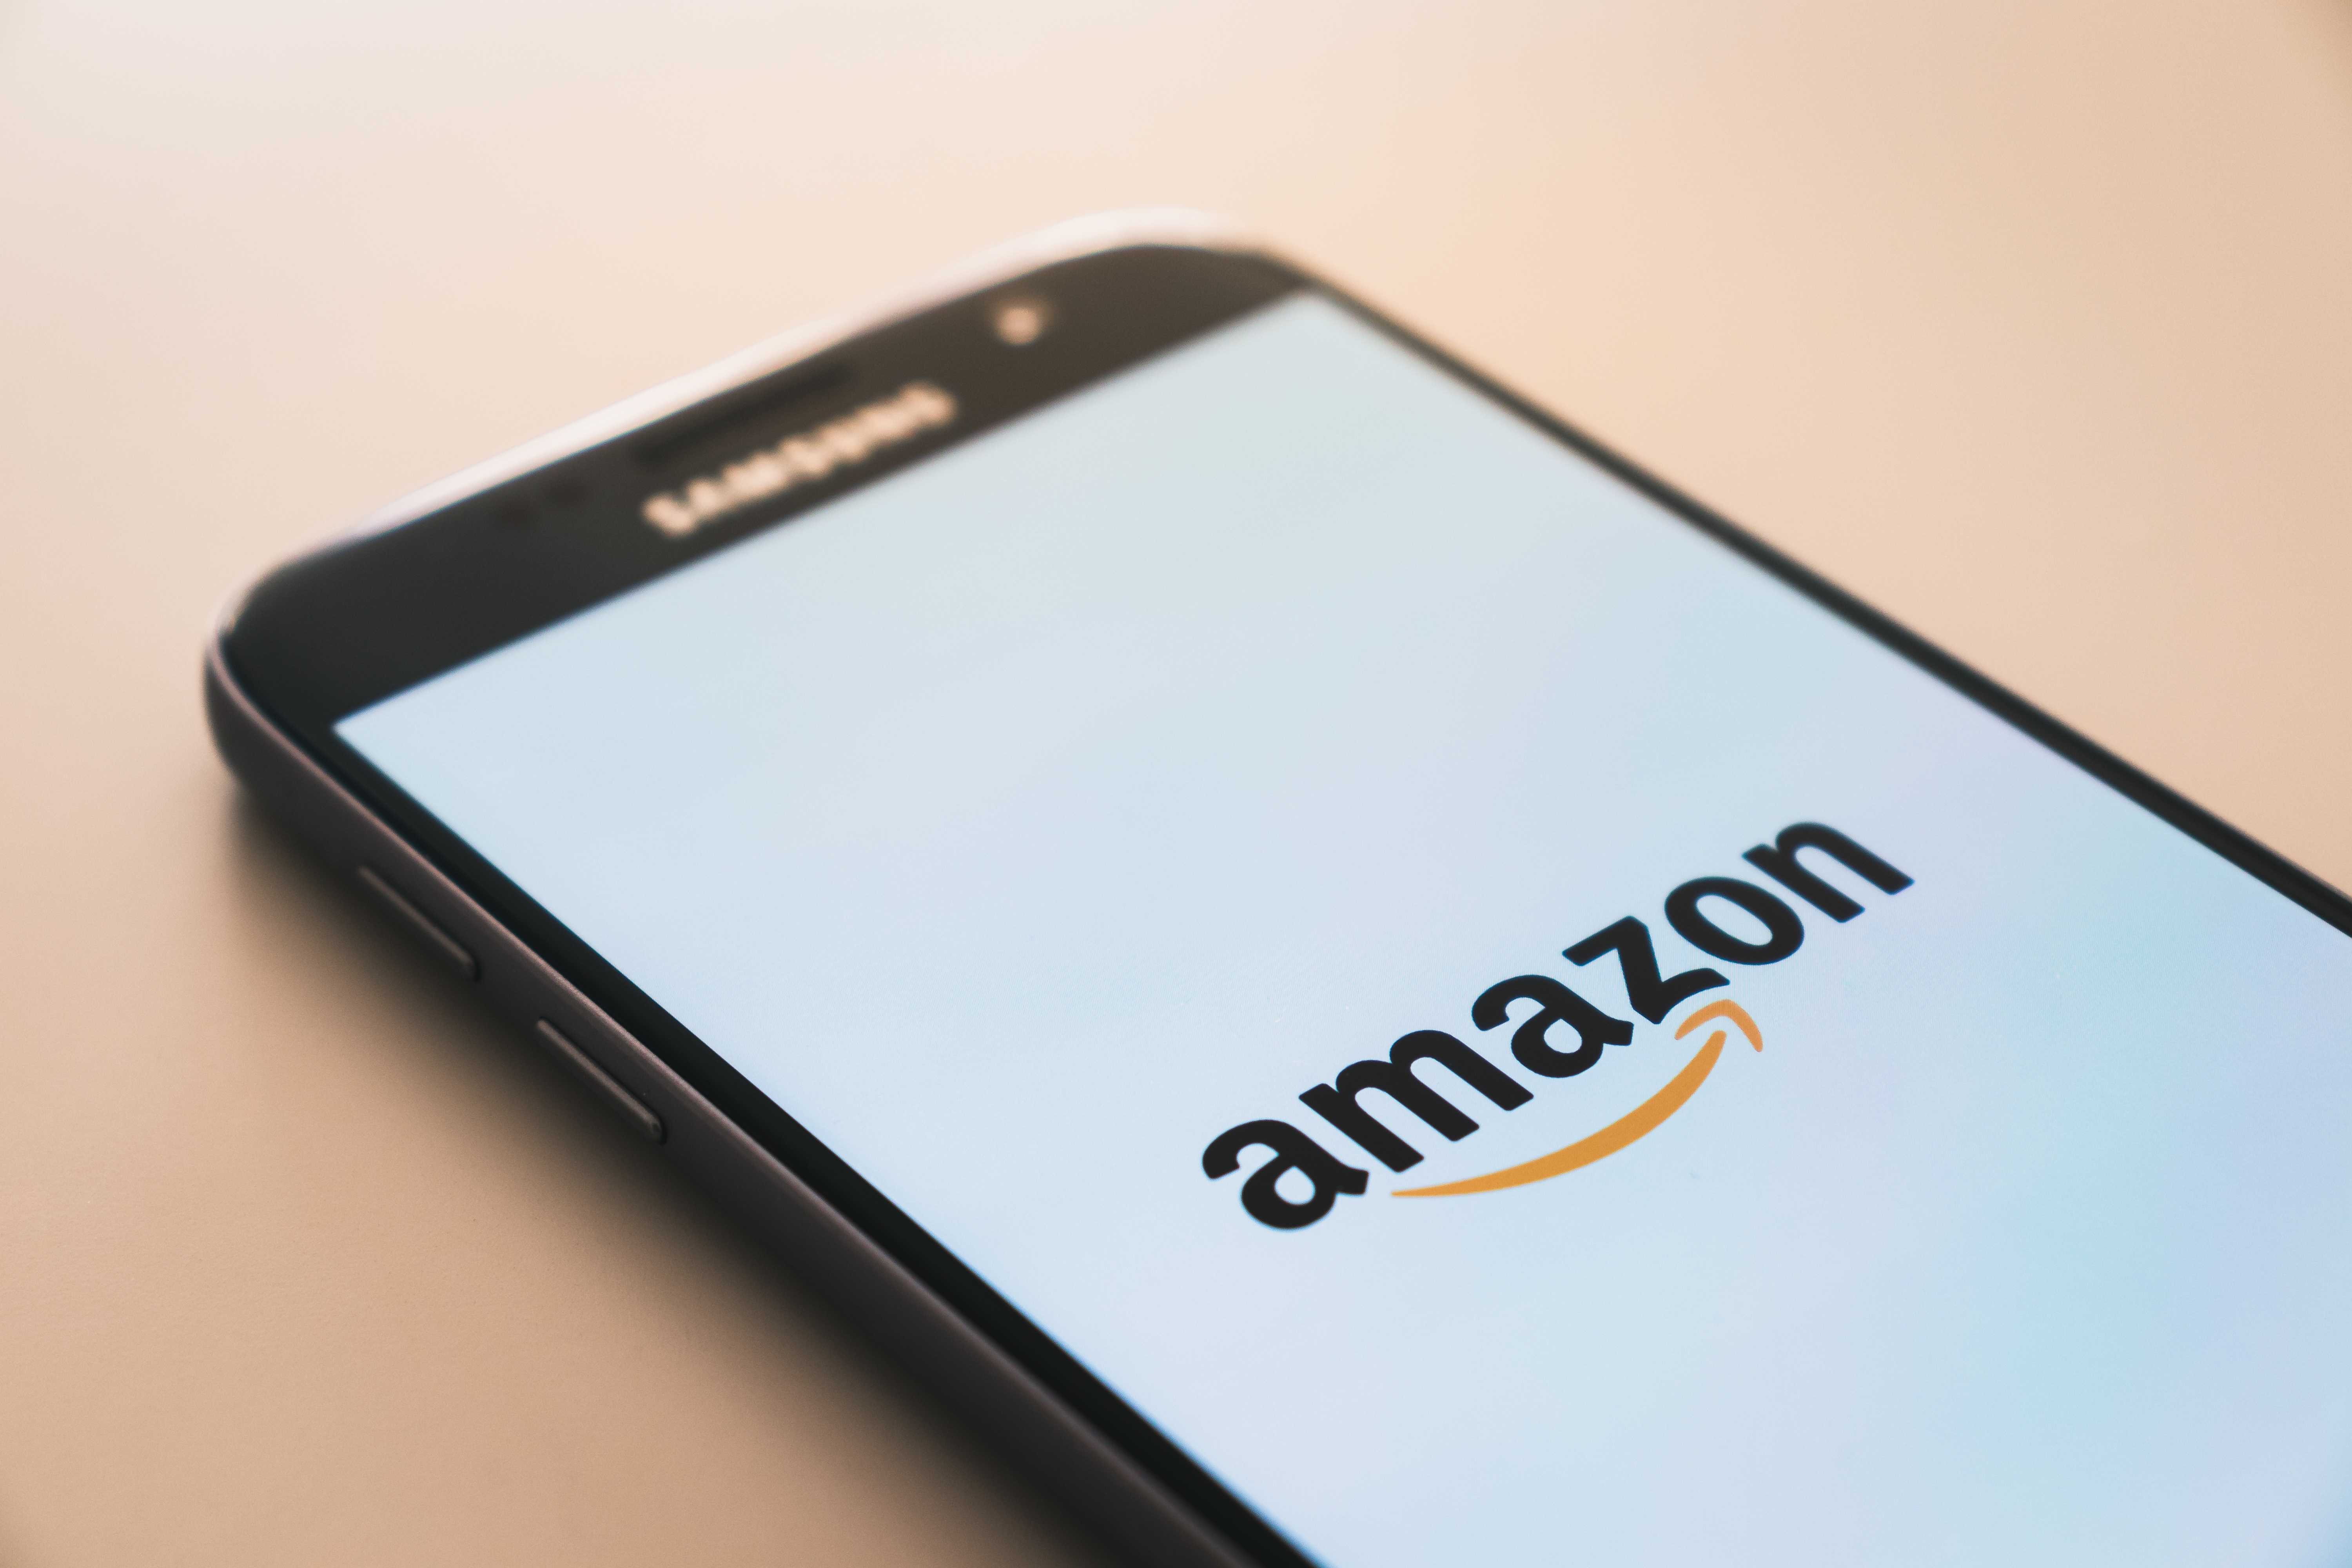 Prime Day a Boon for Small Business